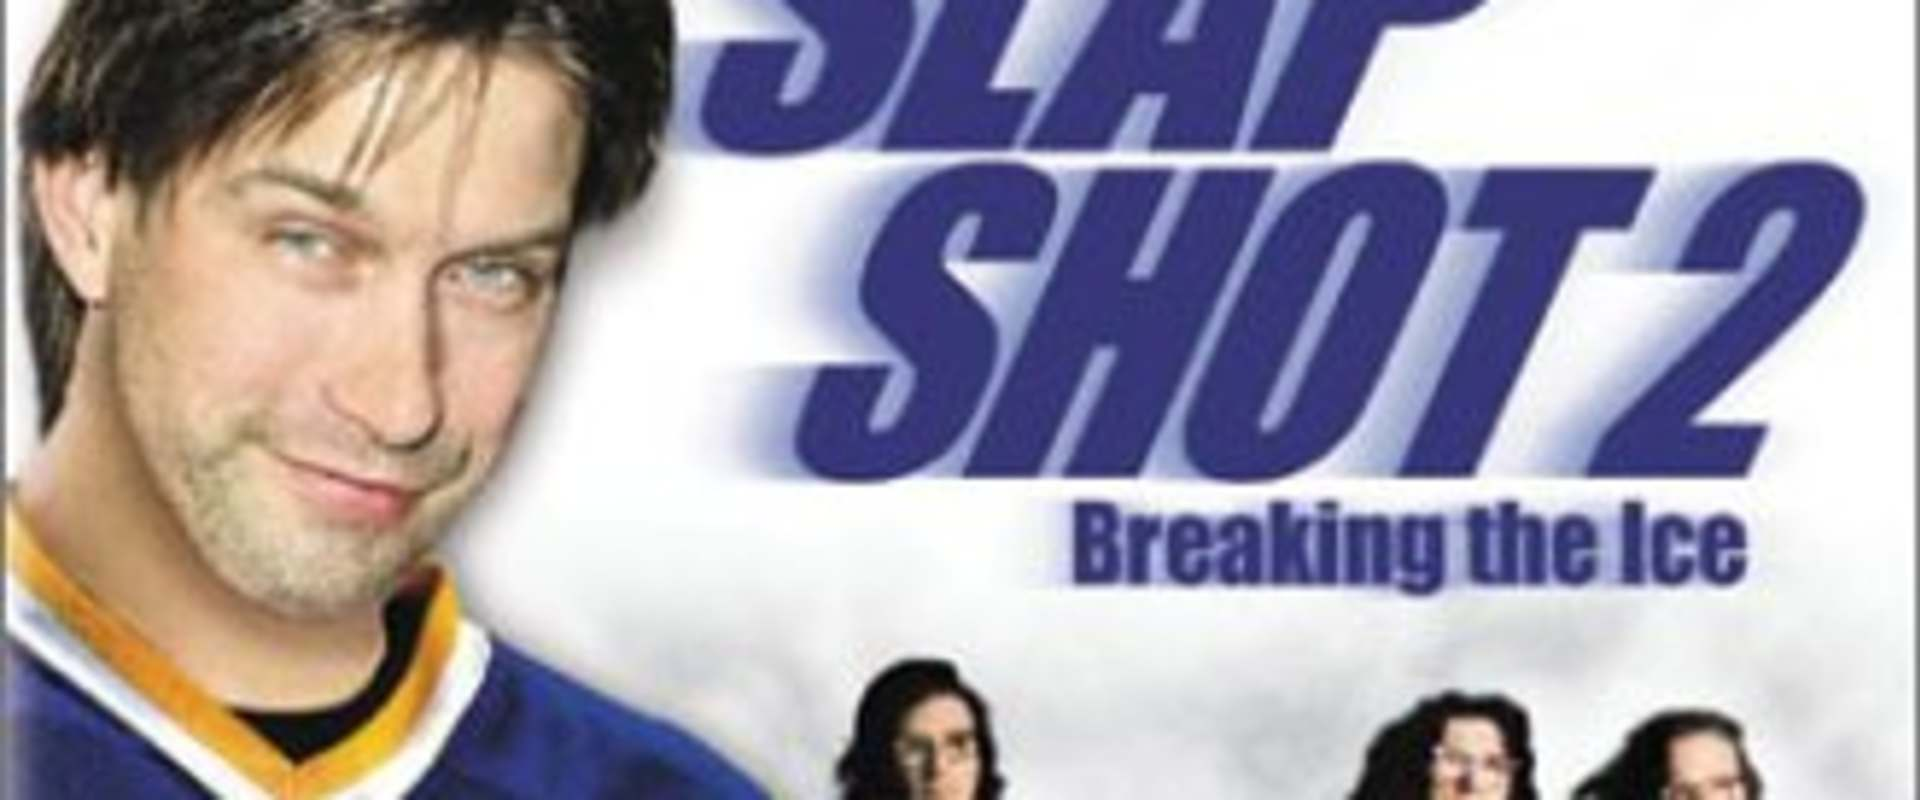 Slap Shot 2: Breaking the Ice background 2